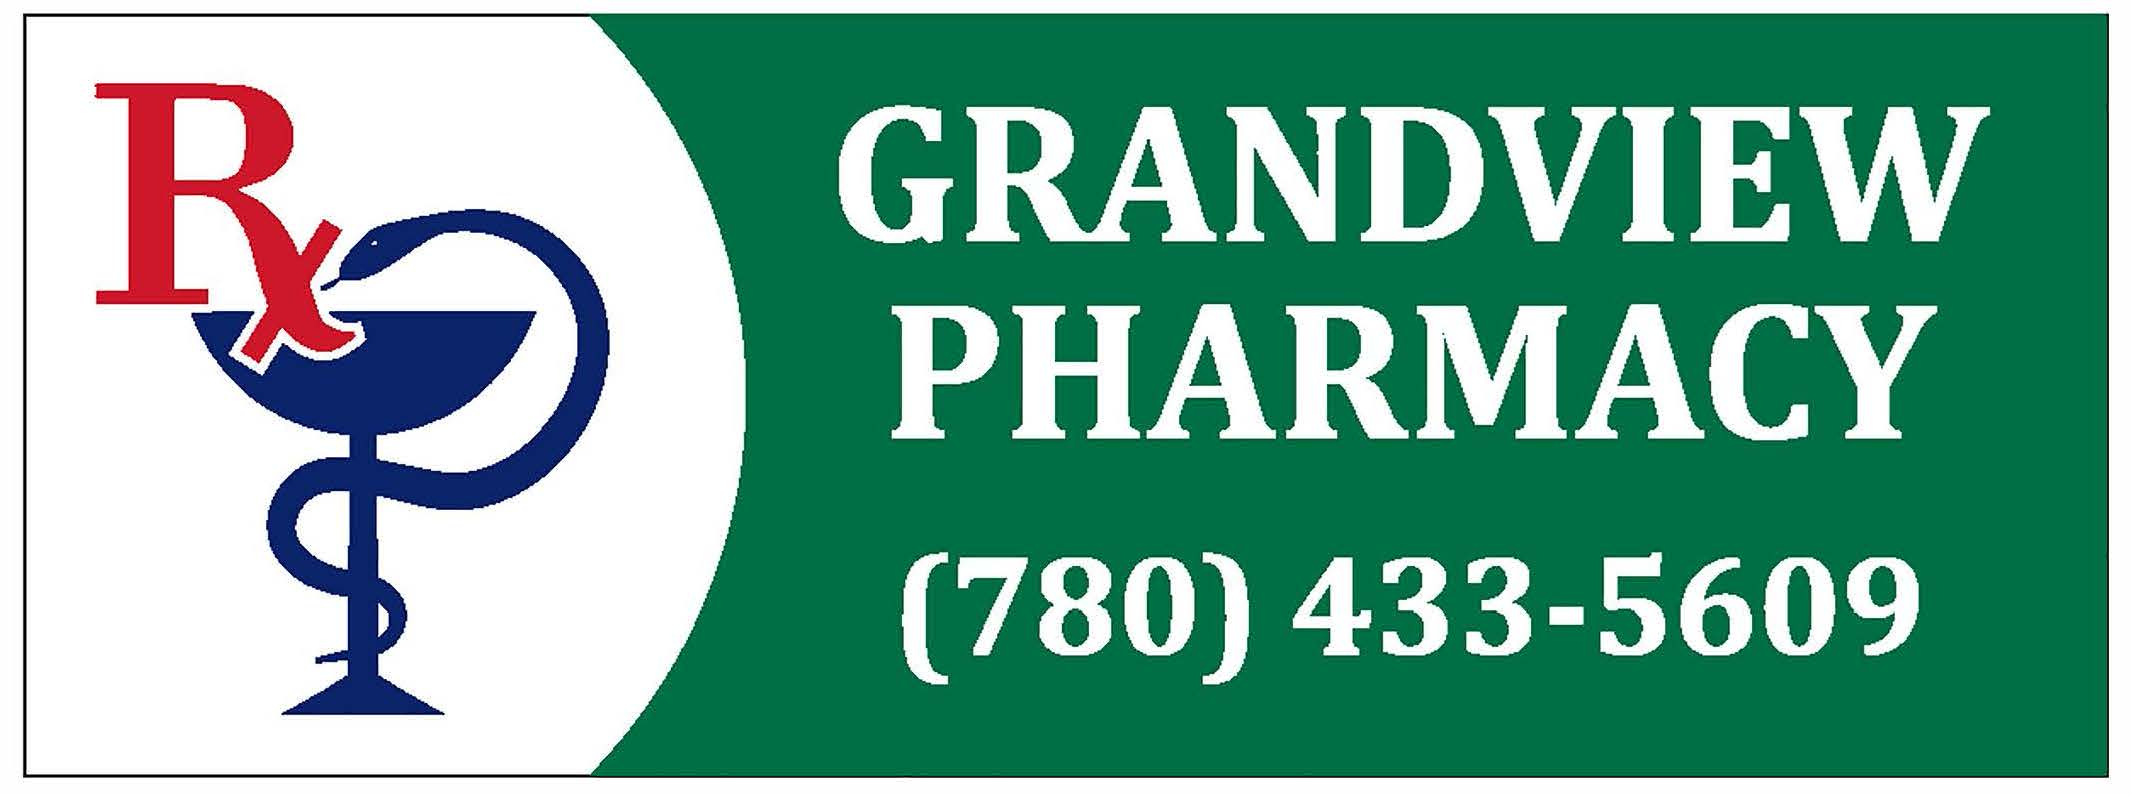 Grand View Pharmacy Edmonton